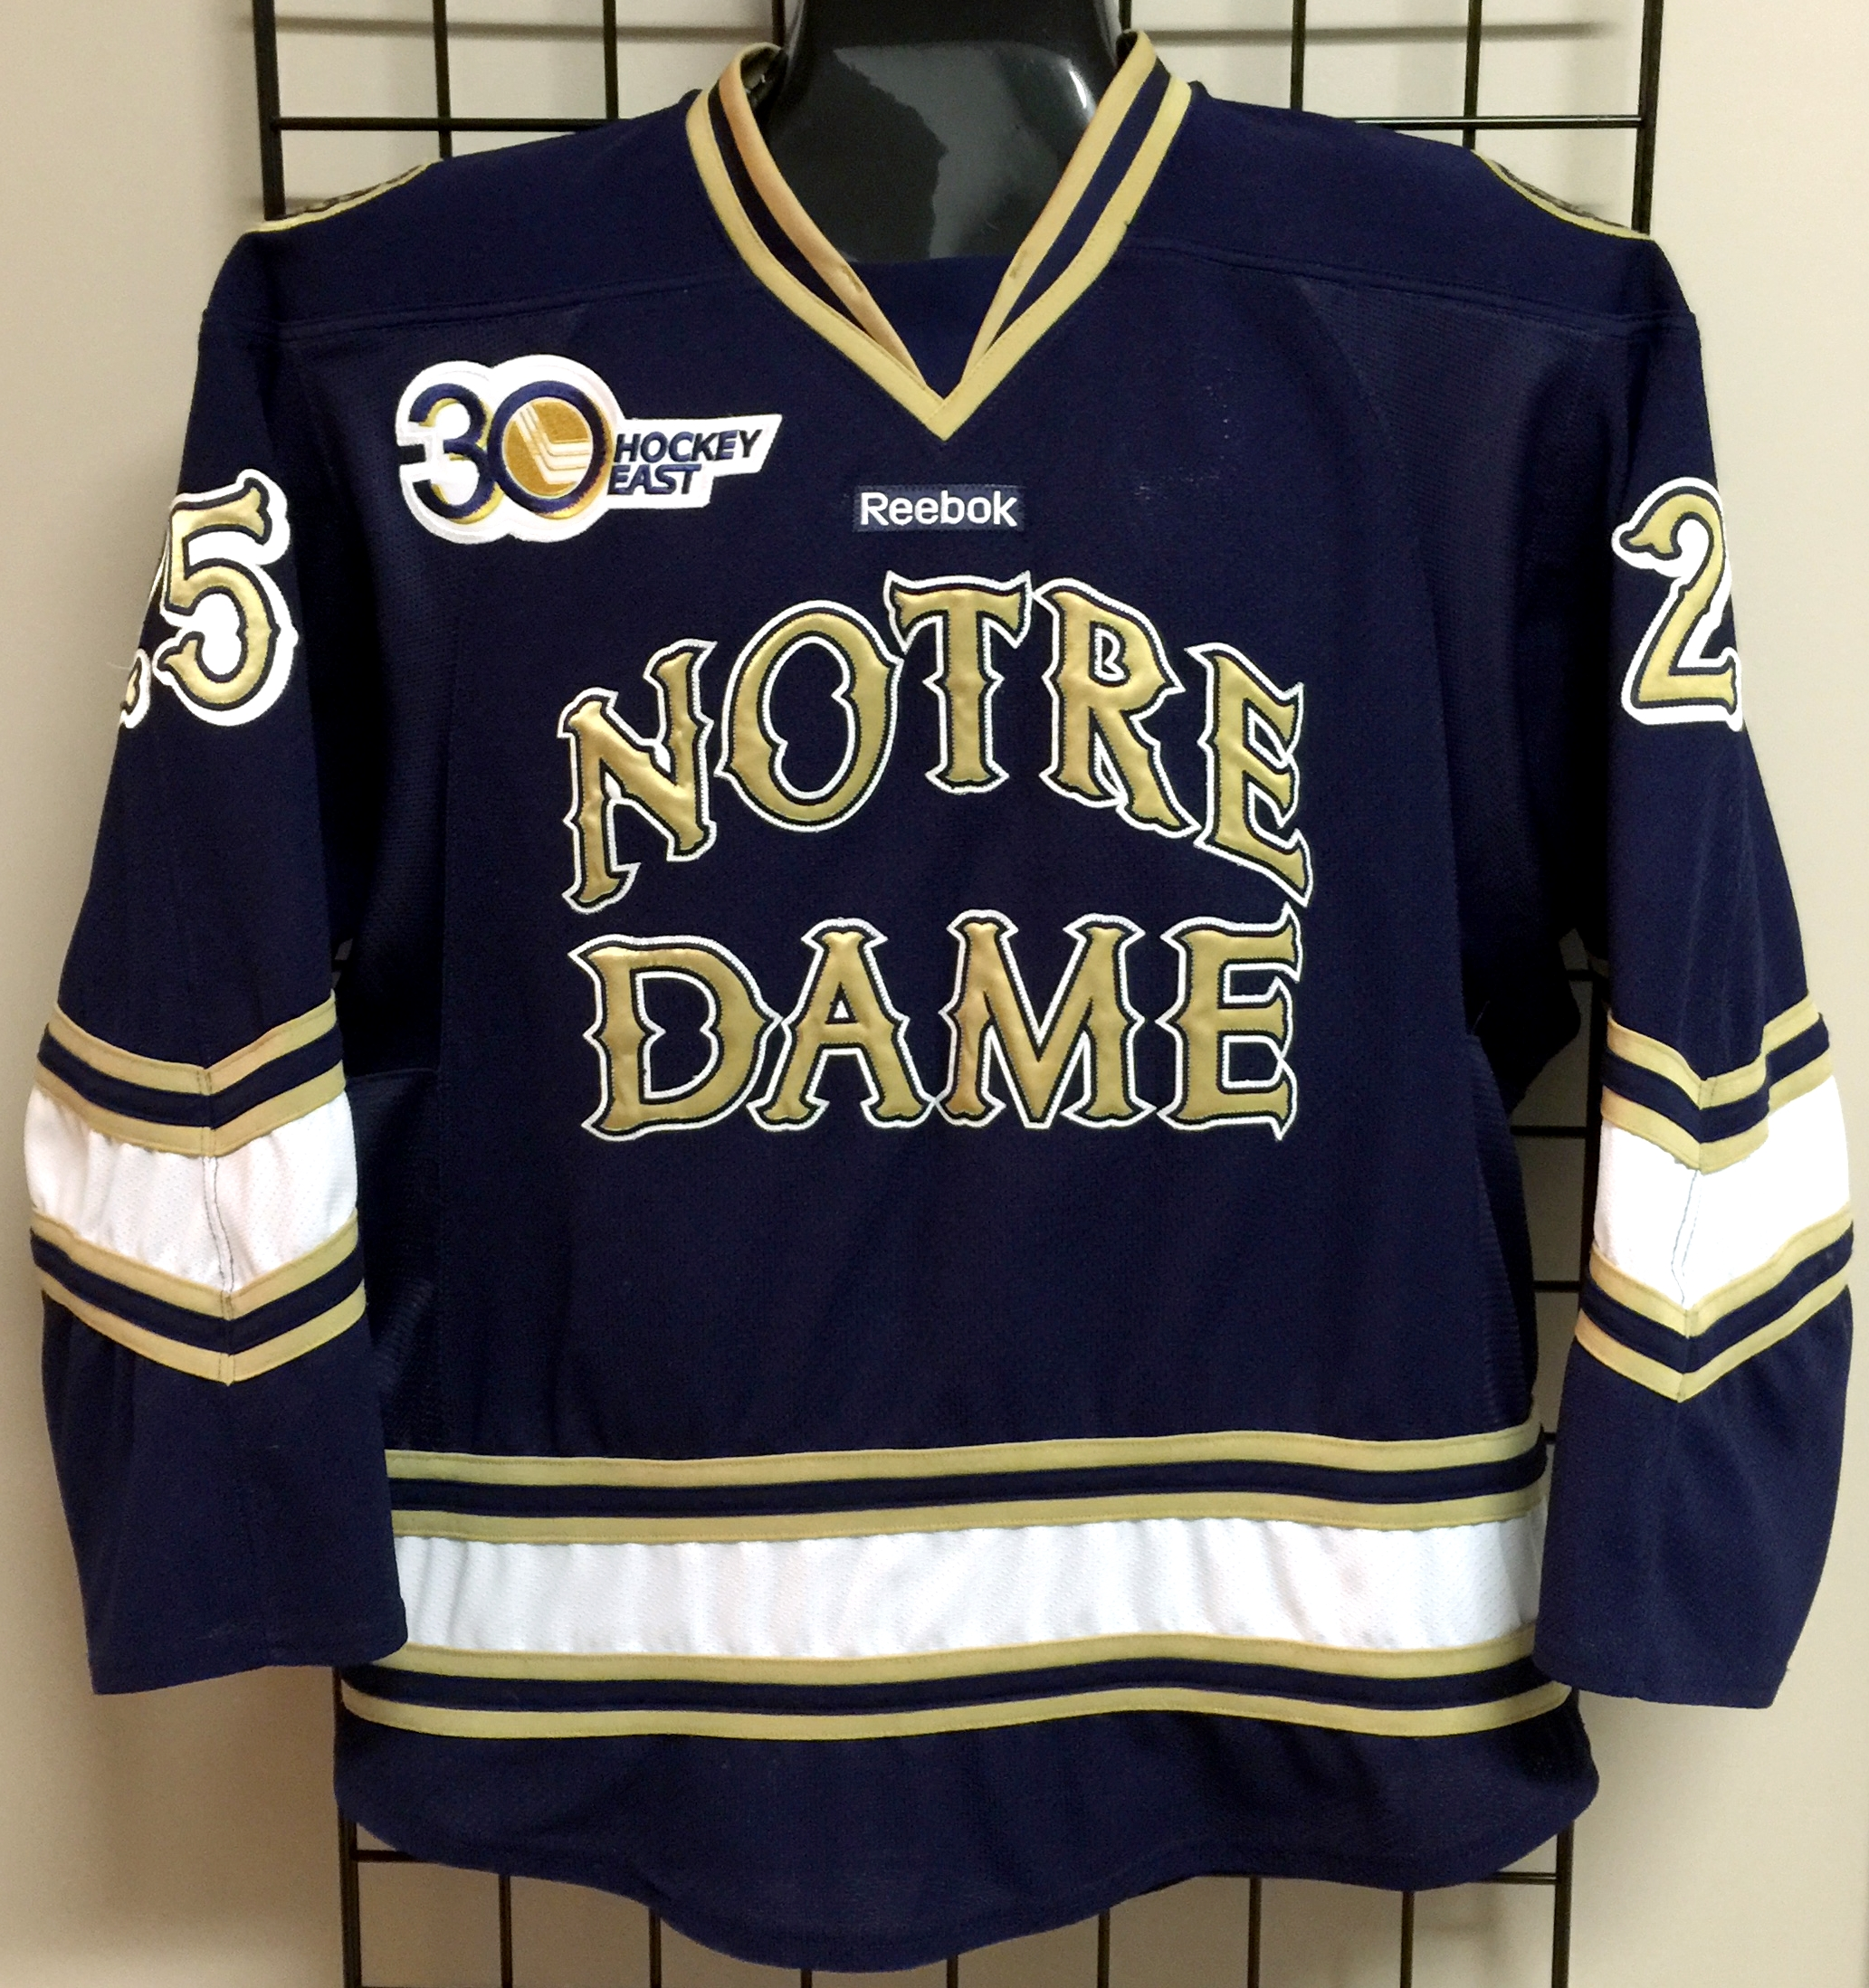 best sneakers c3c79 27470 GVJerseys - Game Worn Hockey Jersey Collection - Notre Dame